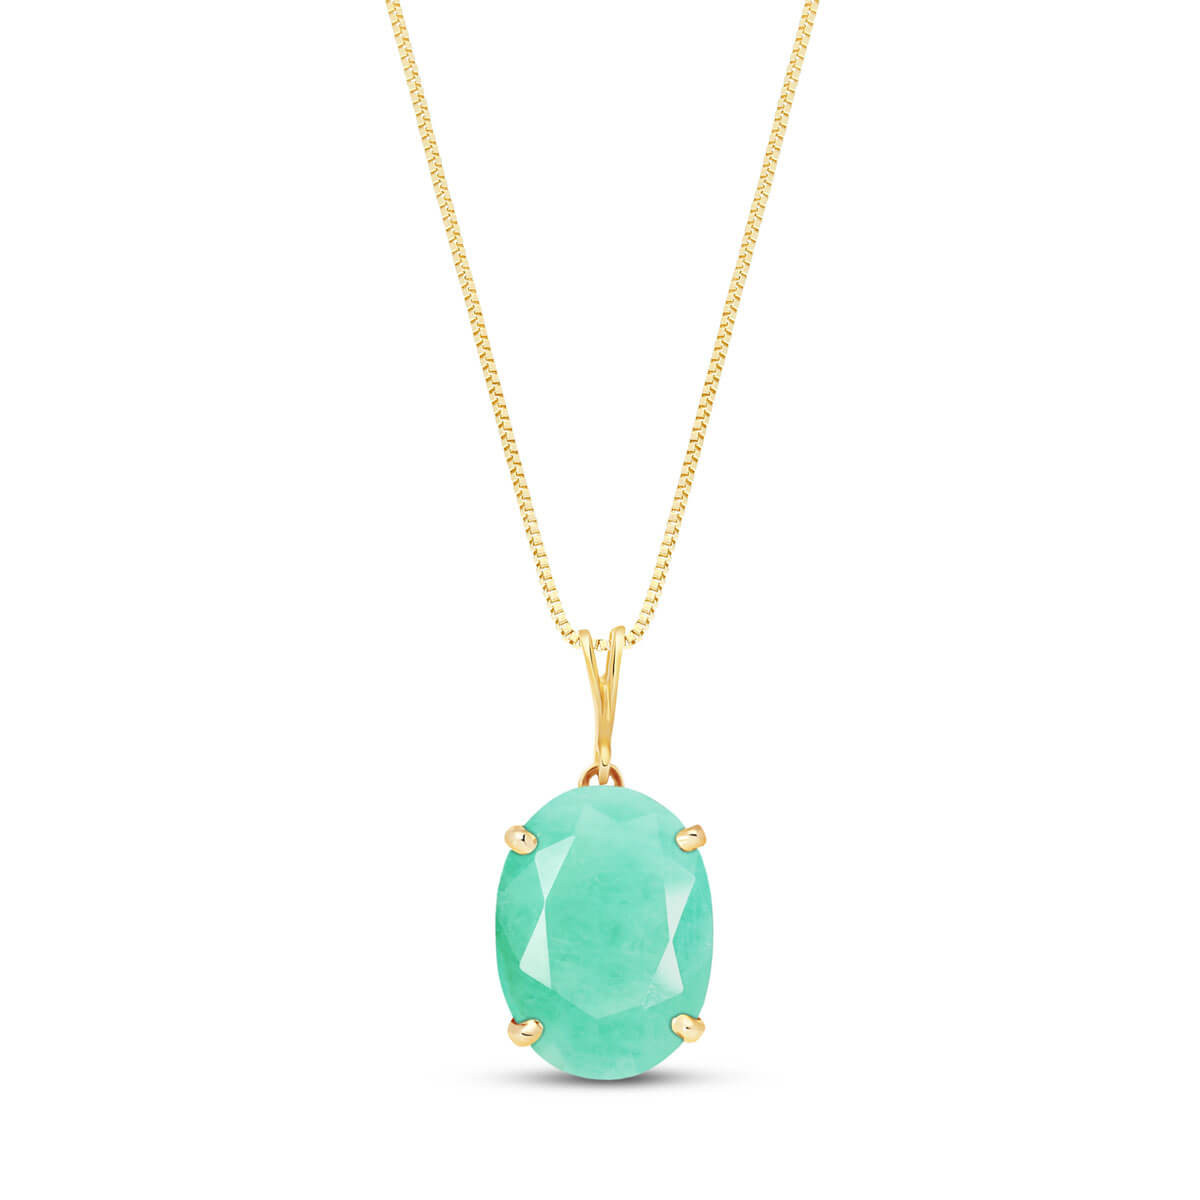 Emerald Oval Pendant Necklace 6.5 ct in 9ct Gold